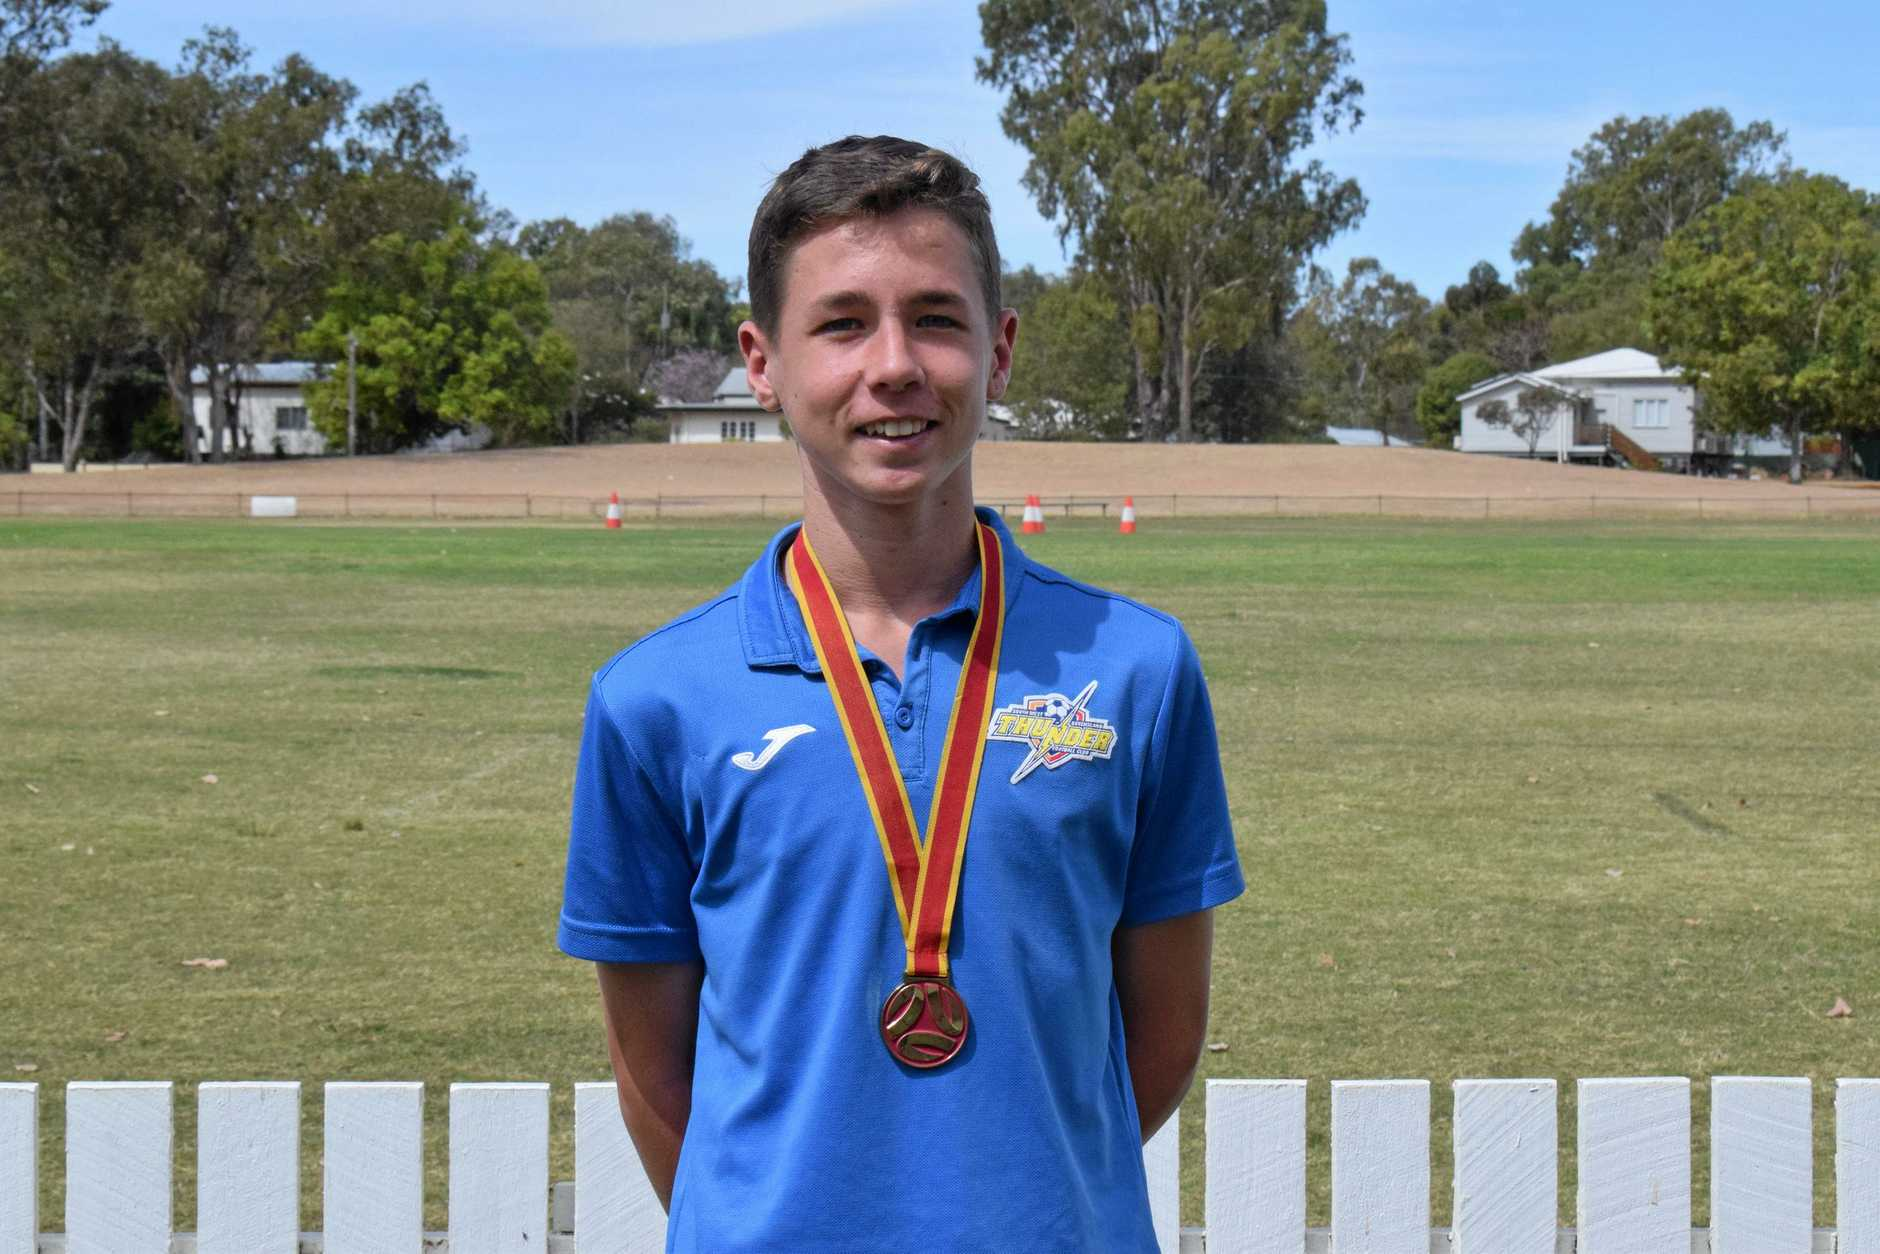 Tyran Henningsen won the National Premier League Grand Final with the South West Queensland Thunder last weekend.